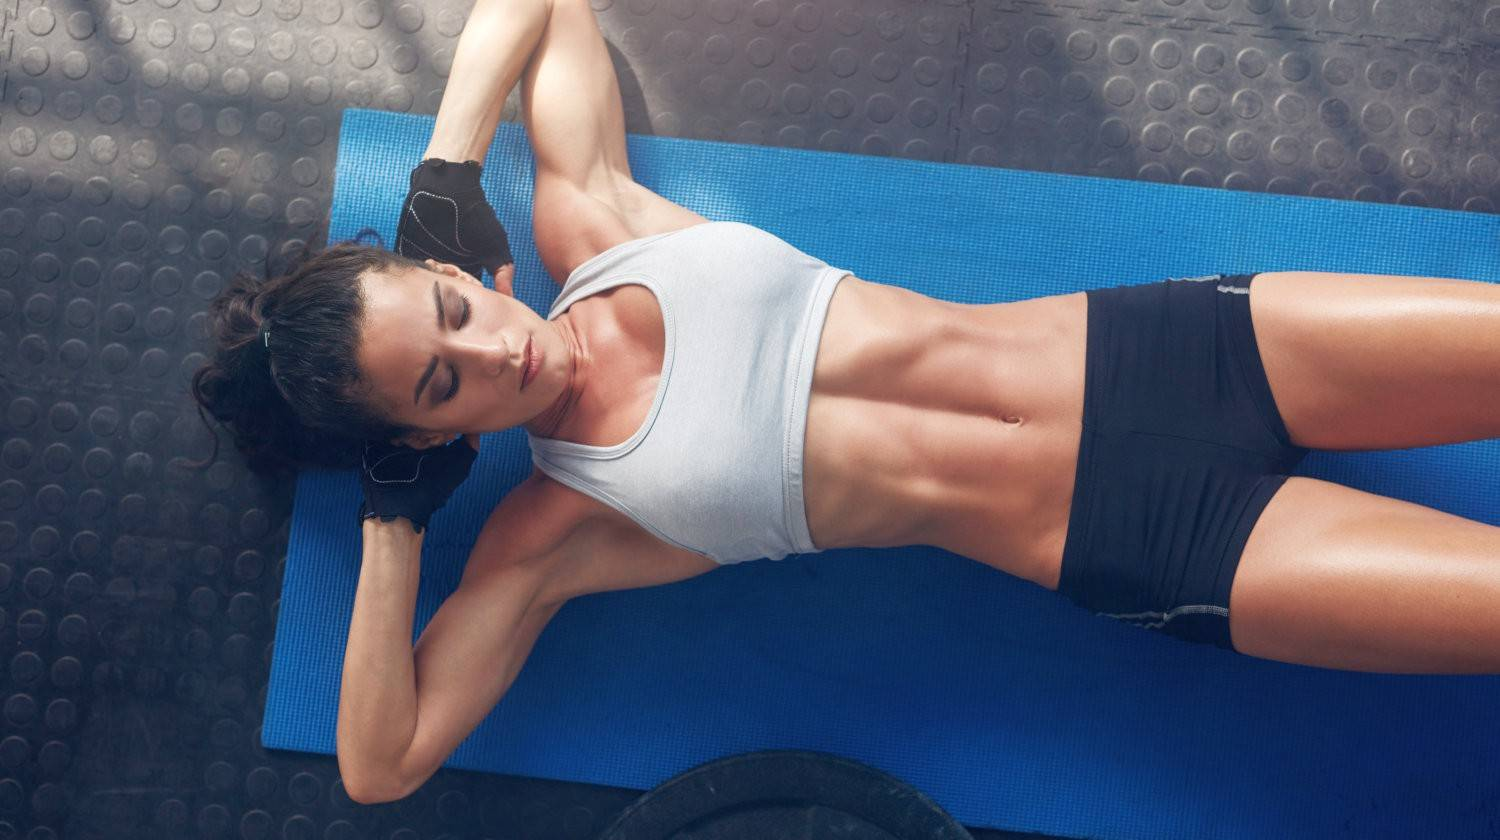 Top view of woman exercising on yoga mat | Authentic Pilates Mat Exercises for Toned Abs | pilates exercises | Featured